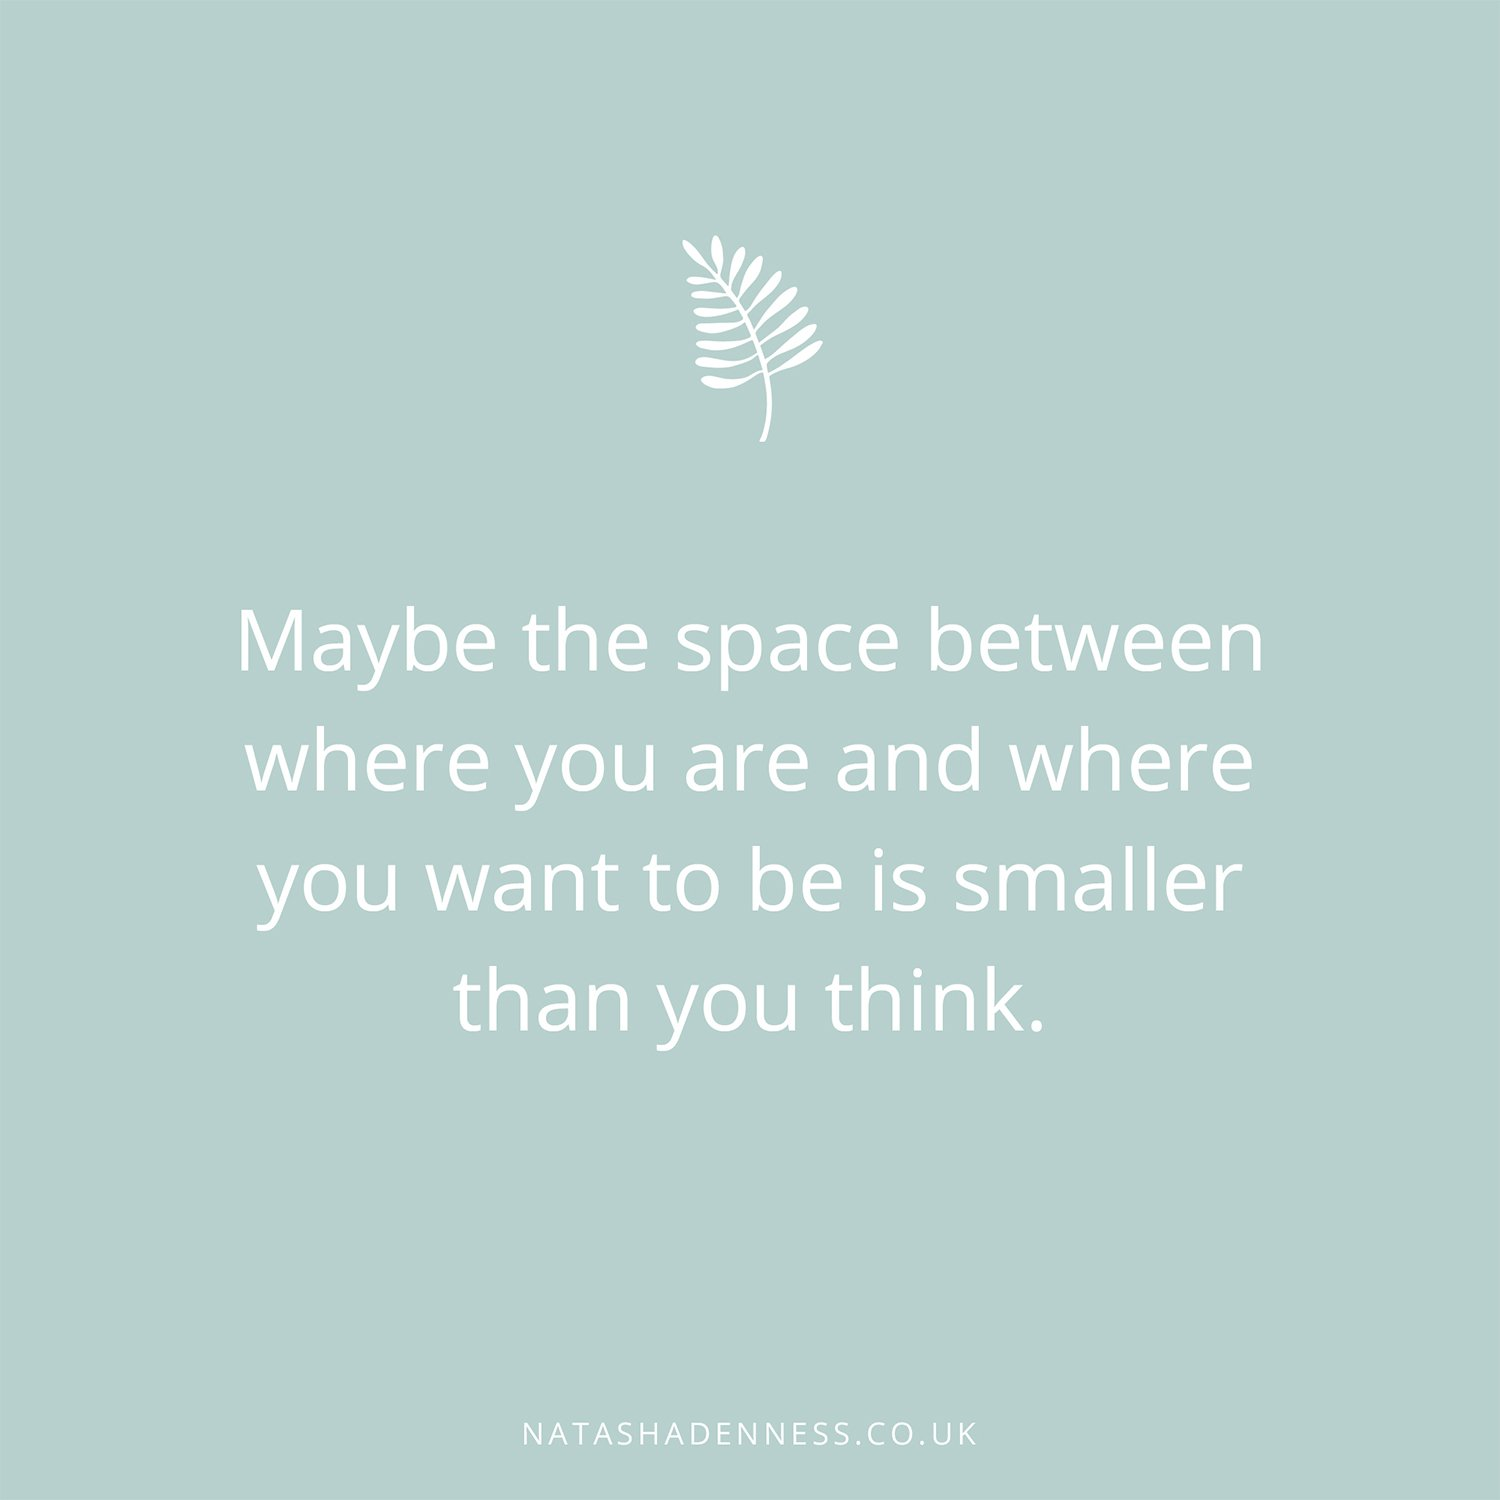 Maybe the space between where you are and where you want to be is smaller than you think | Natasha Denness Coaching